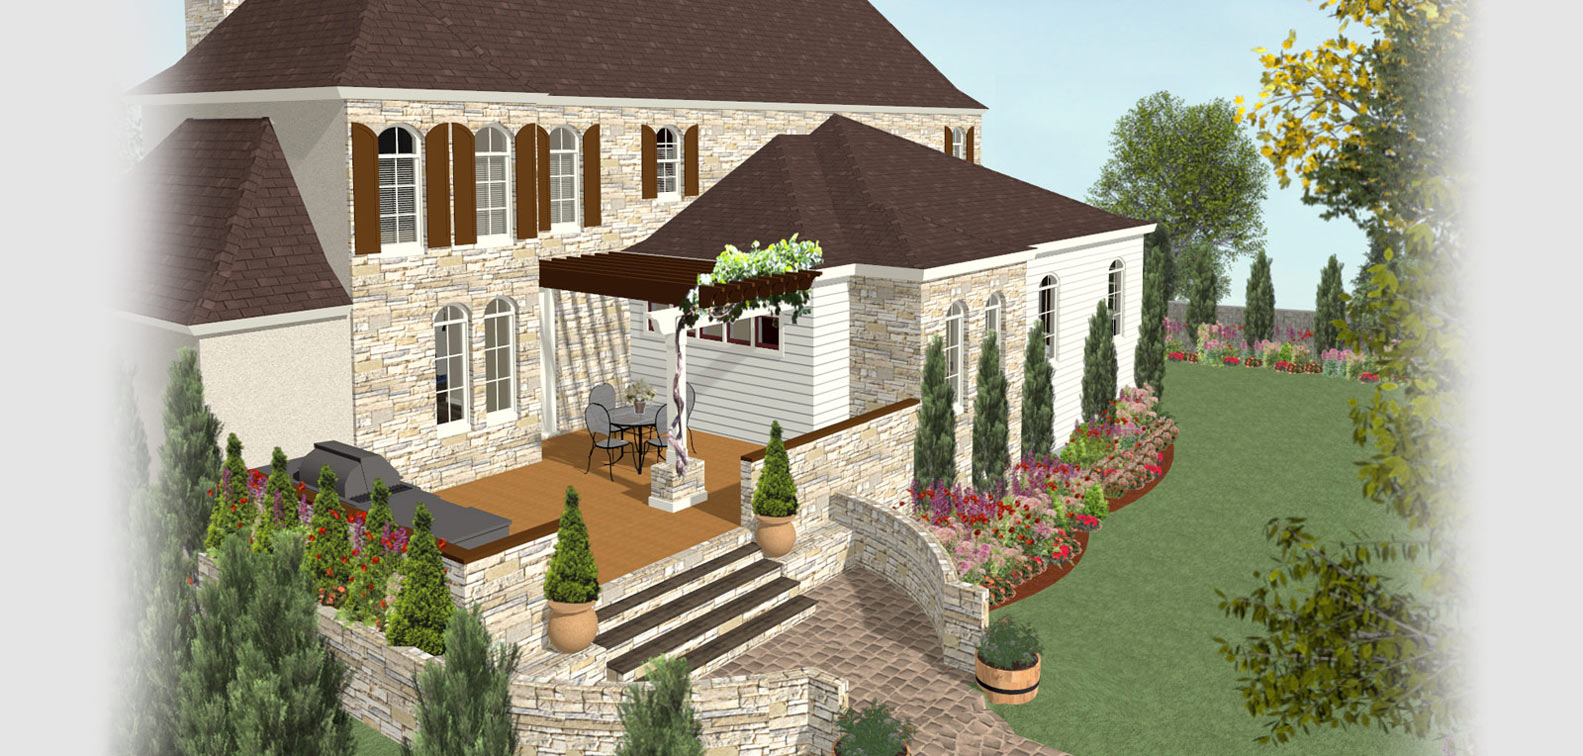 Home Designer Software For Deck And Landscape Projects